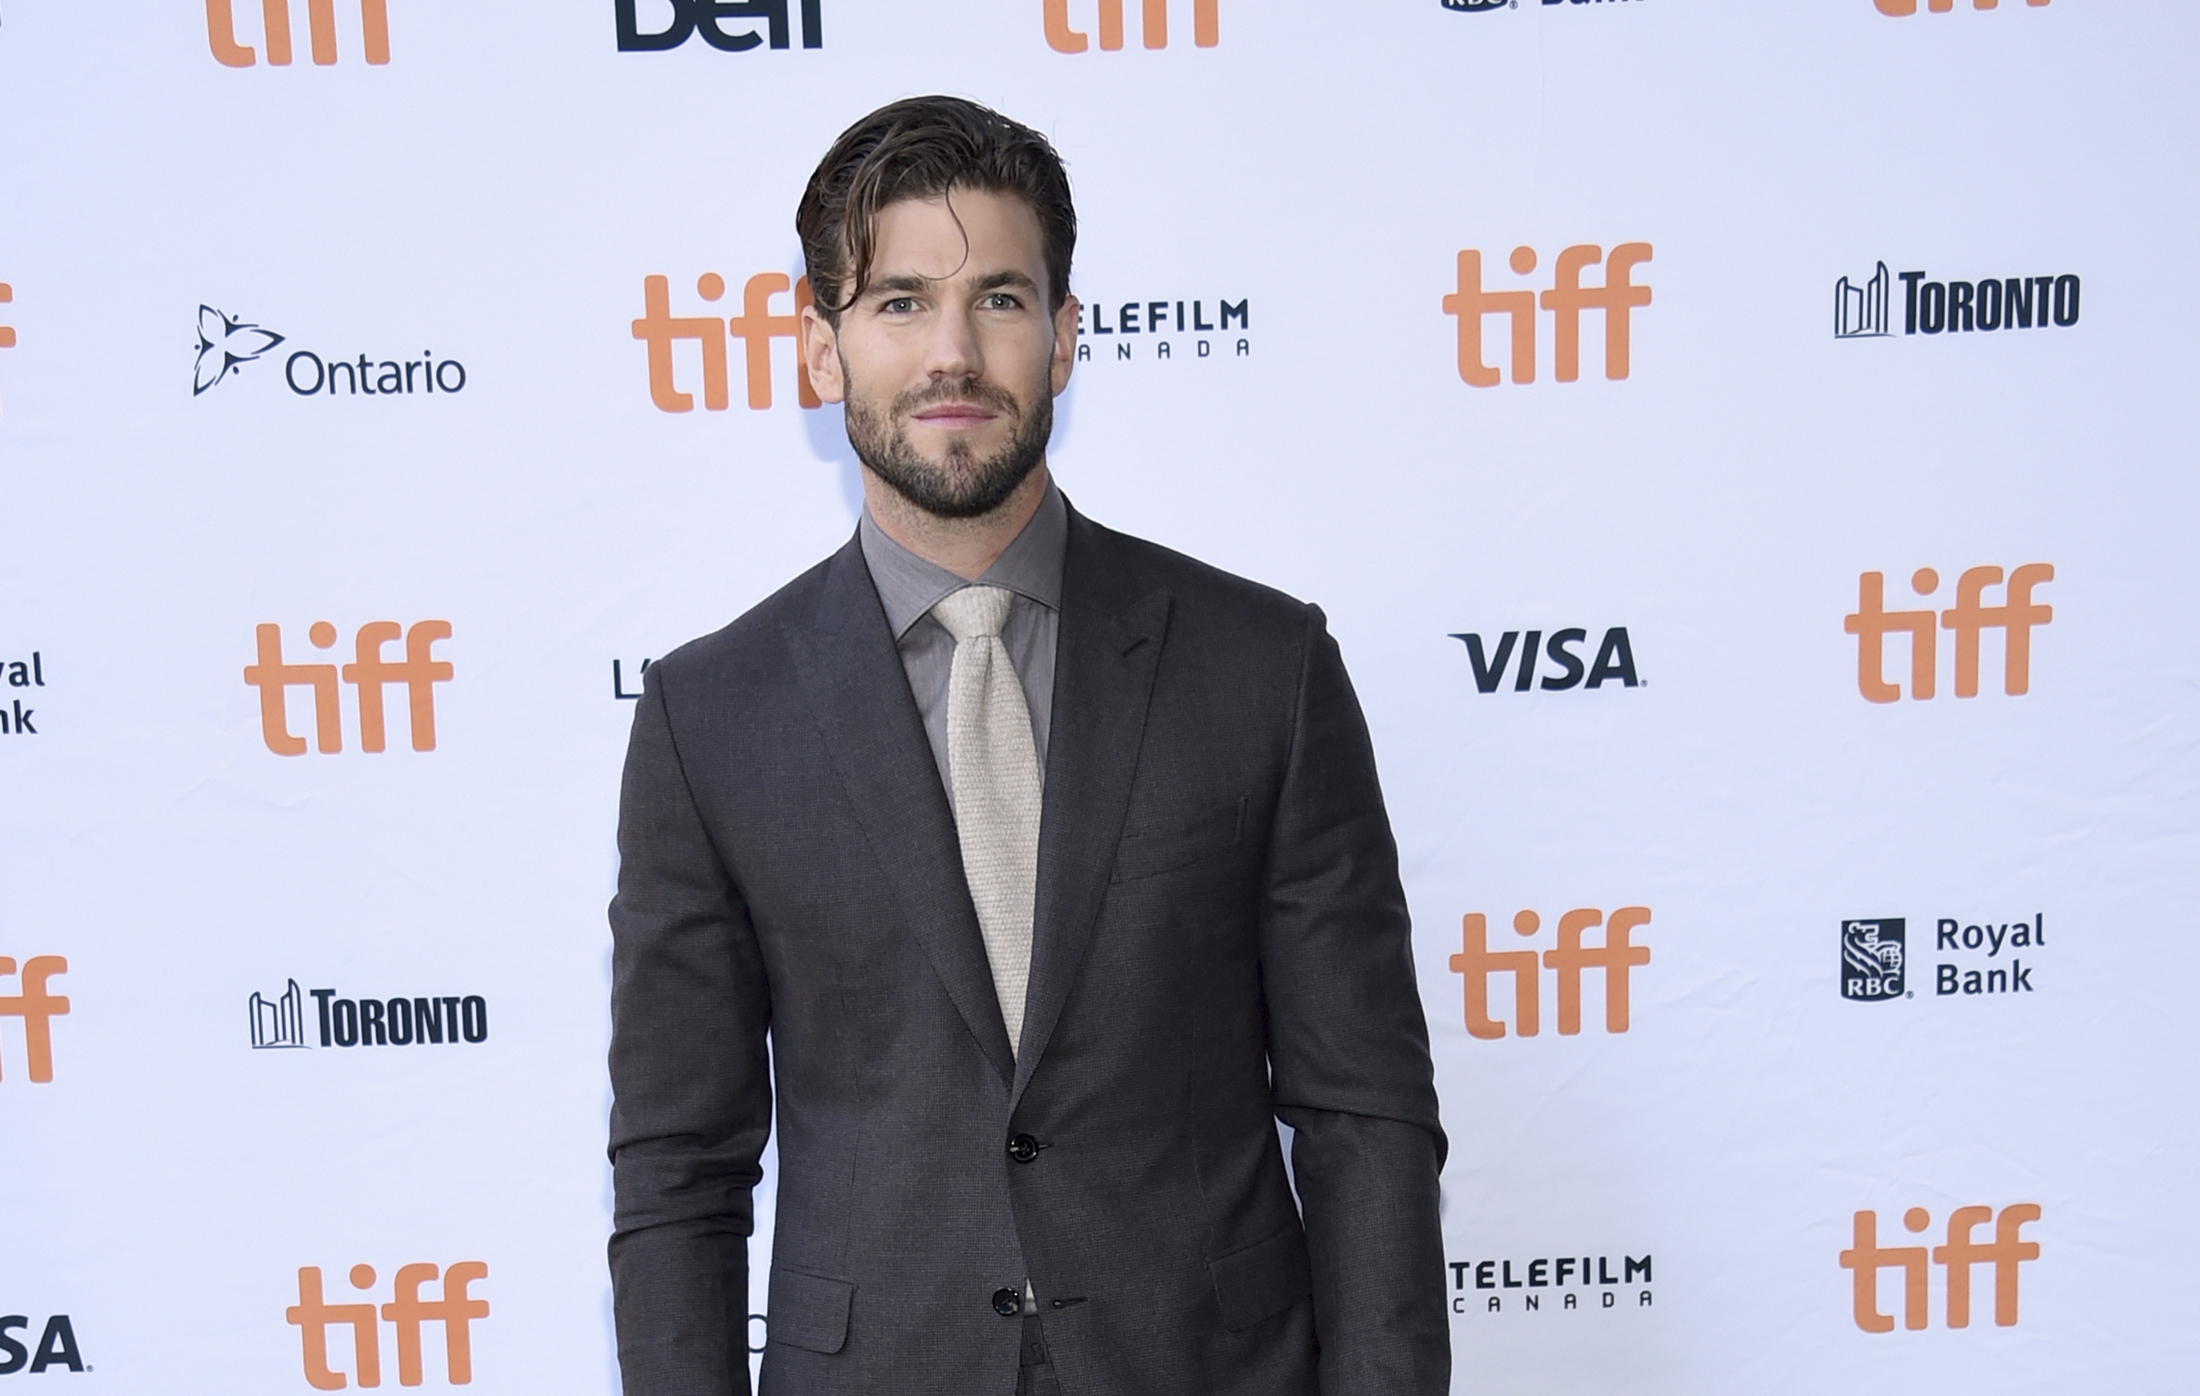 """Austin Stowell attends a premiere for """"Battle of the Sexes"""" on day 4 of the Toronto International Film Festival at the Ryerson Theatre on Sunday, Sept. 10, 2017, in Toronto. (Photo by Evan Agostini/Invision/AP)"""